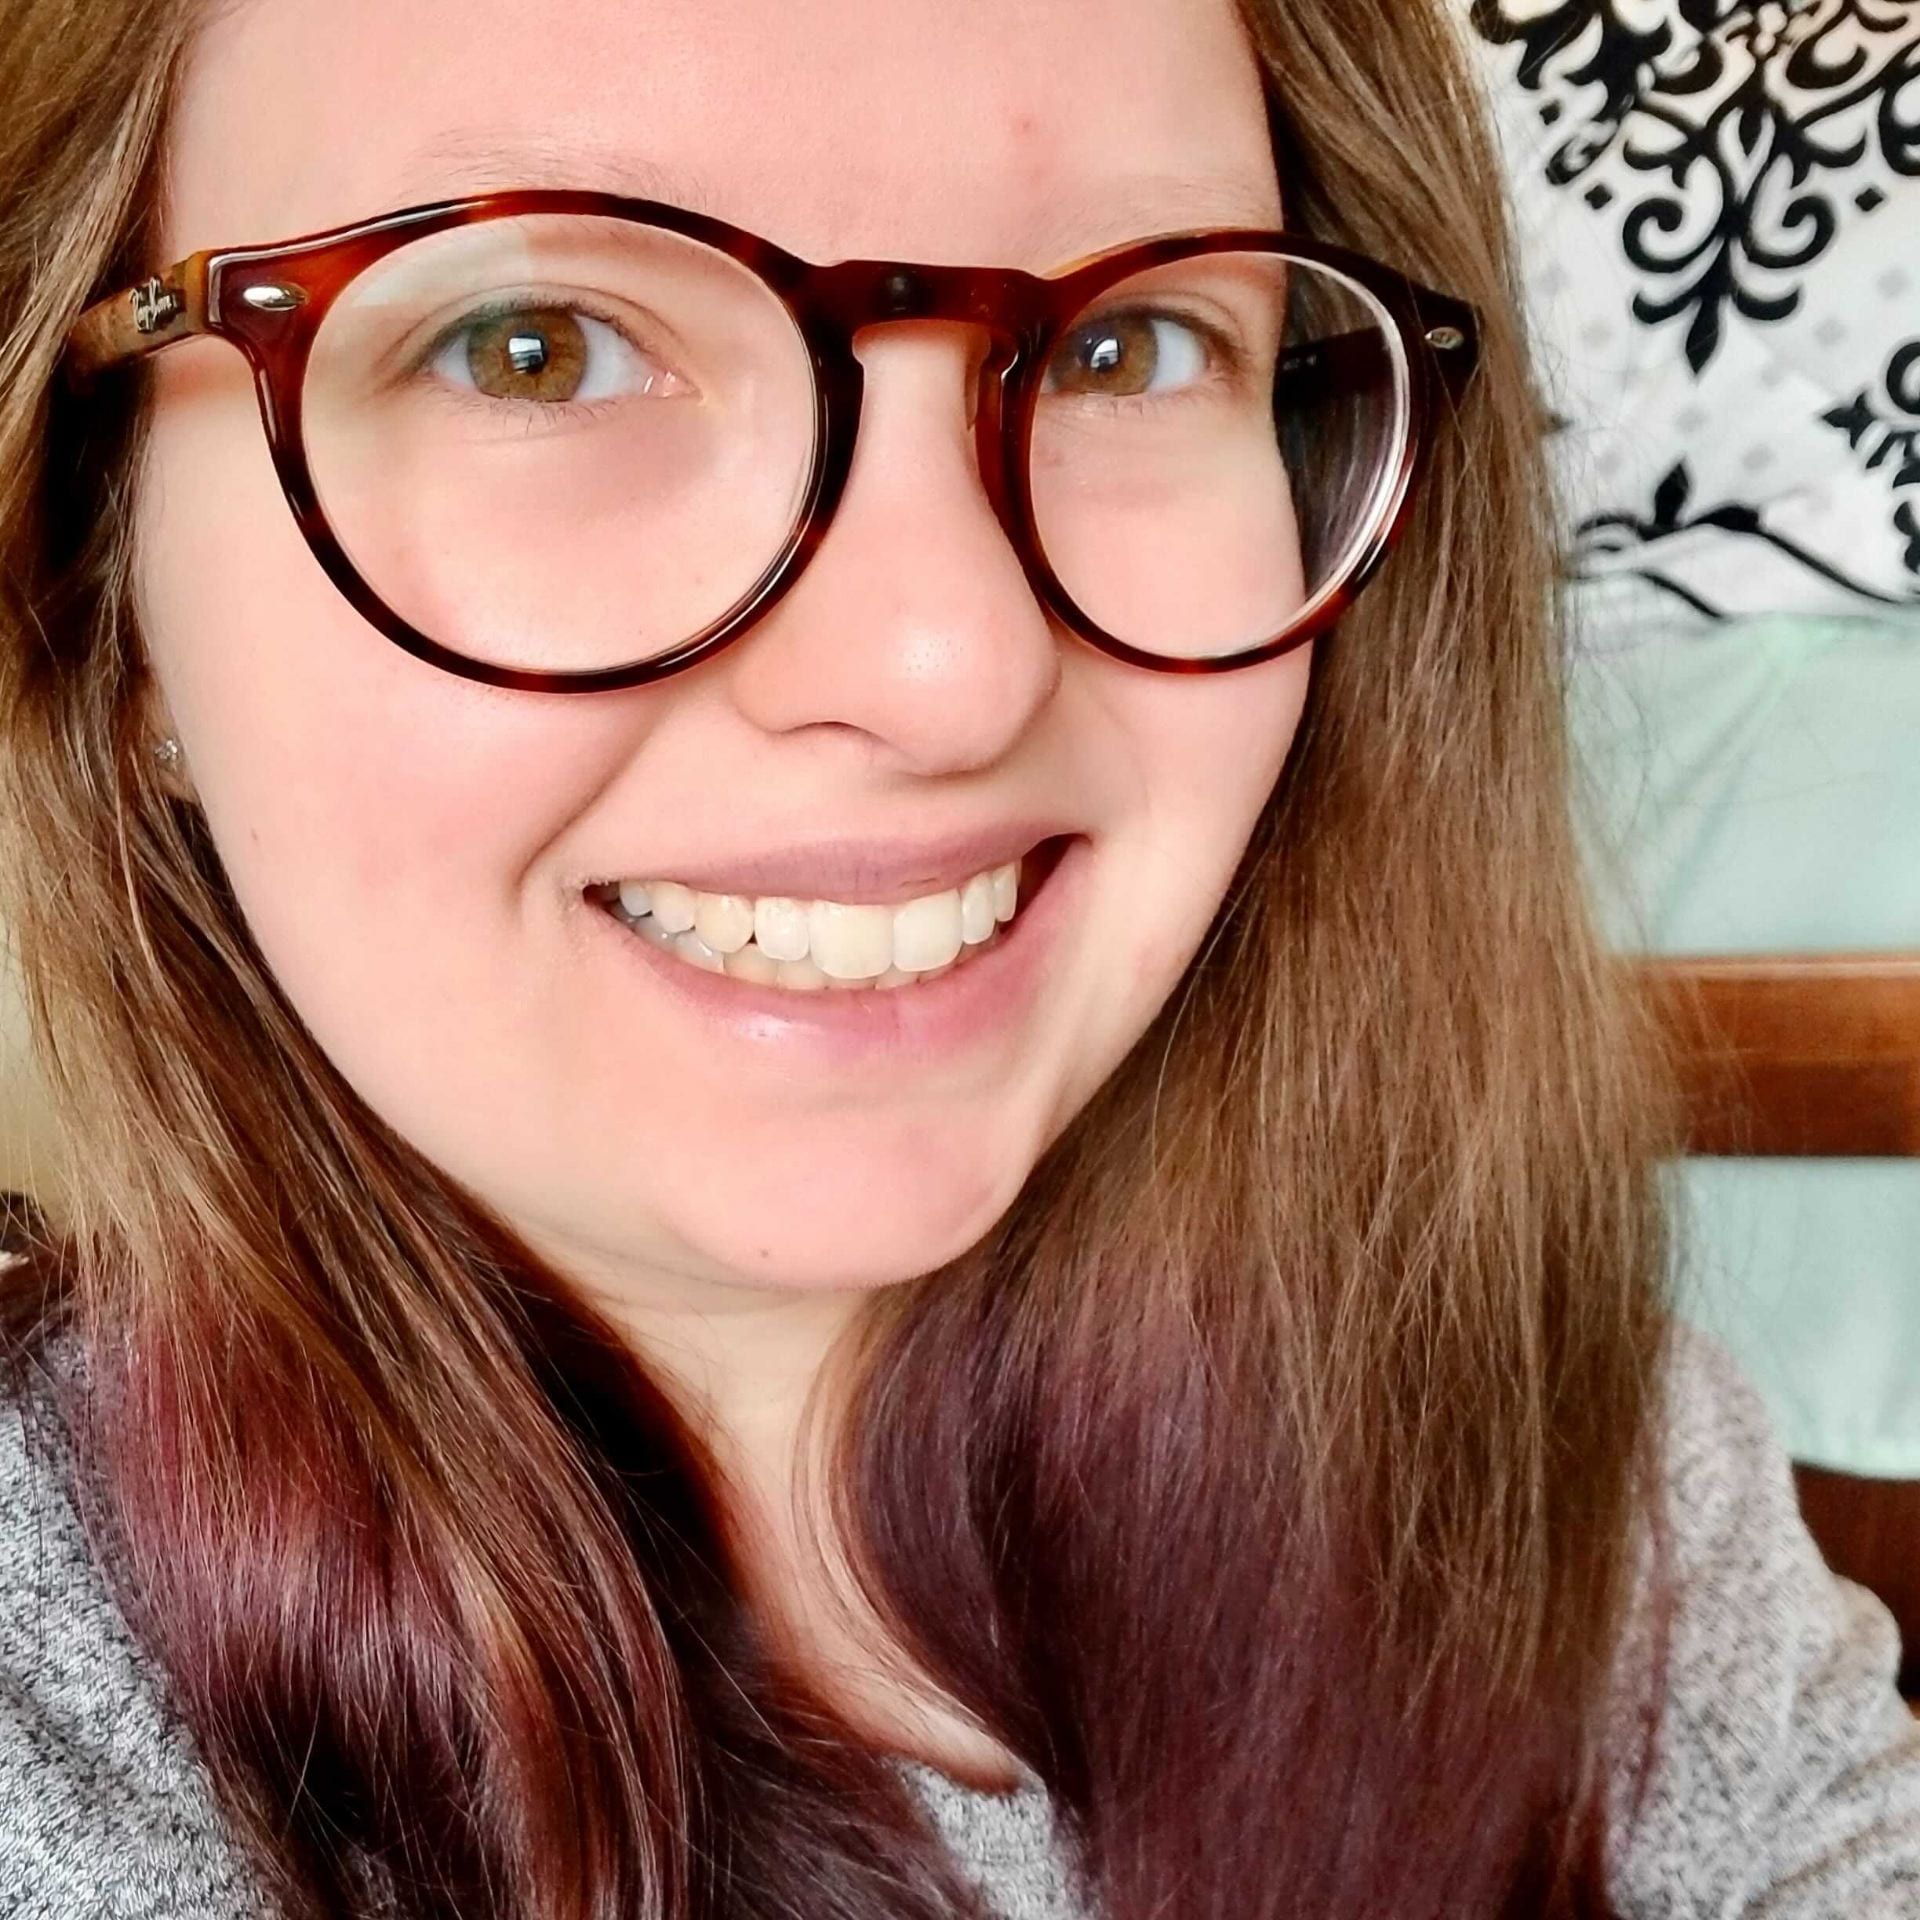 Photograph of Cassie Manrique, she is looking at the camera, smiling and wearing glasses